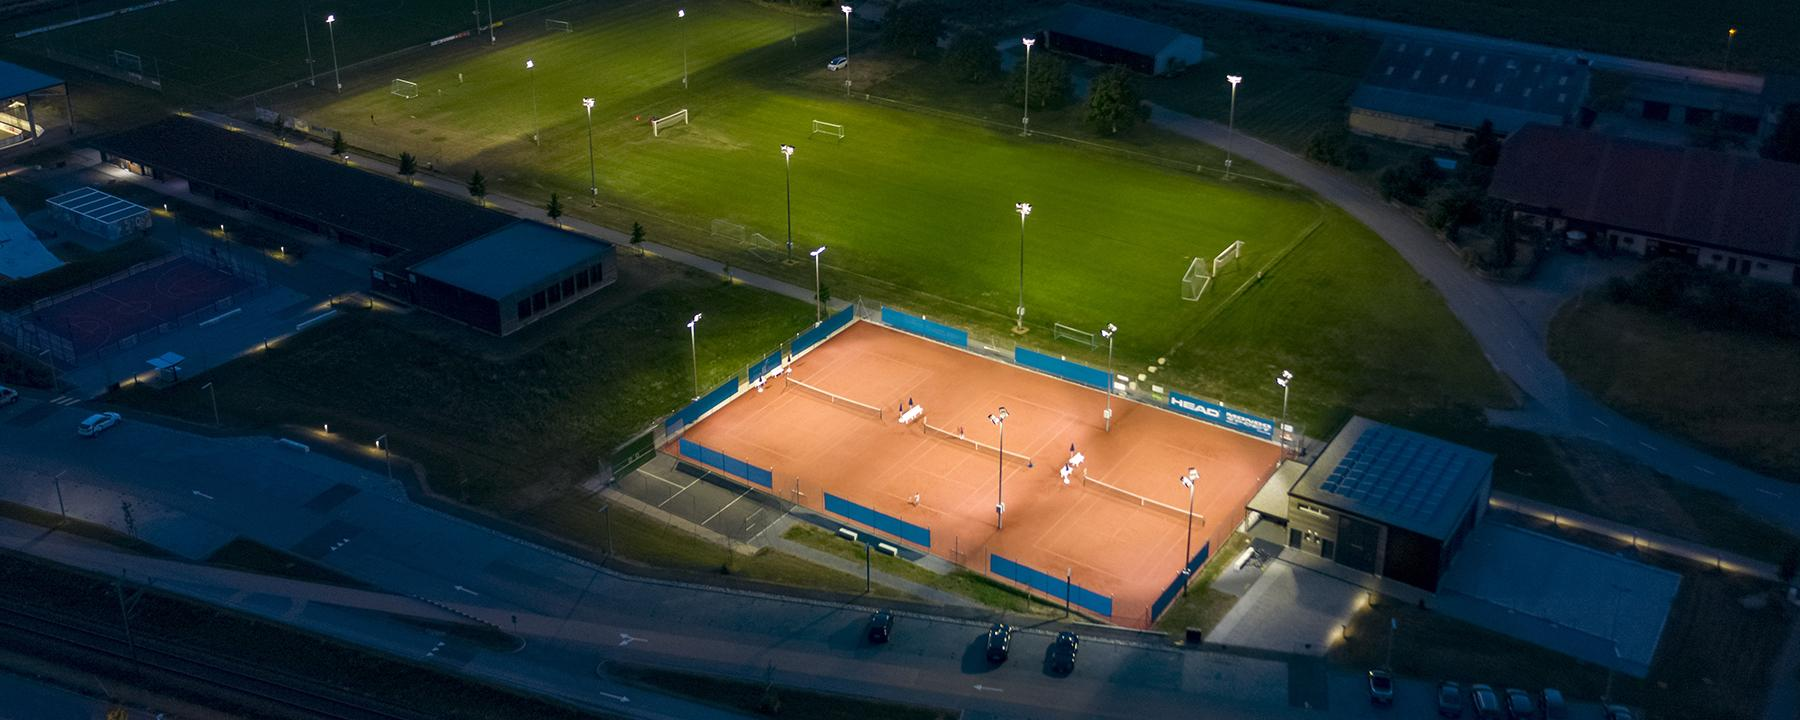 Sports lighting solutions that don't pollute